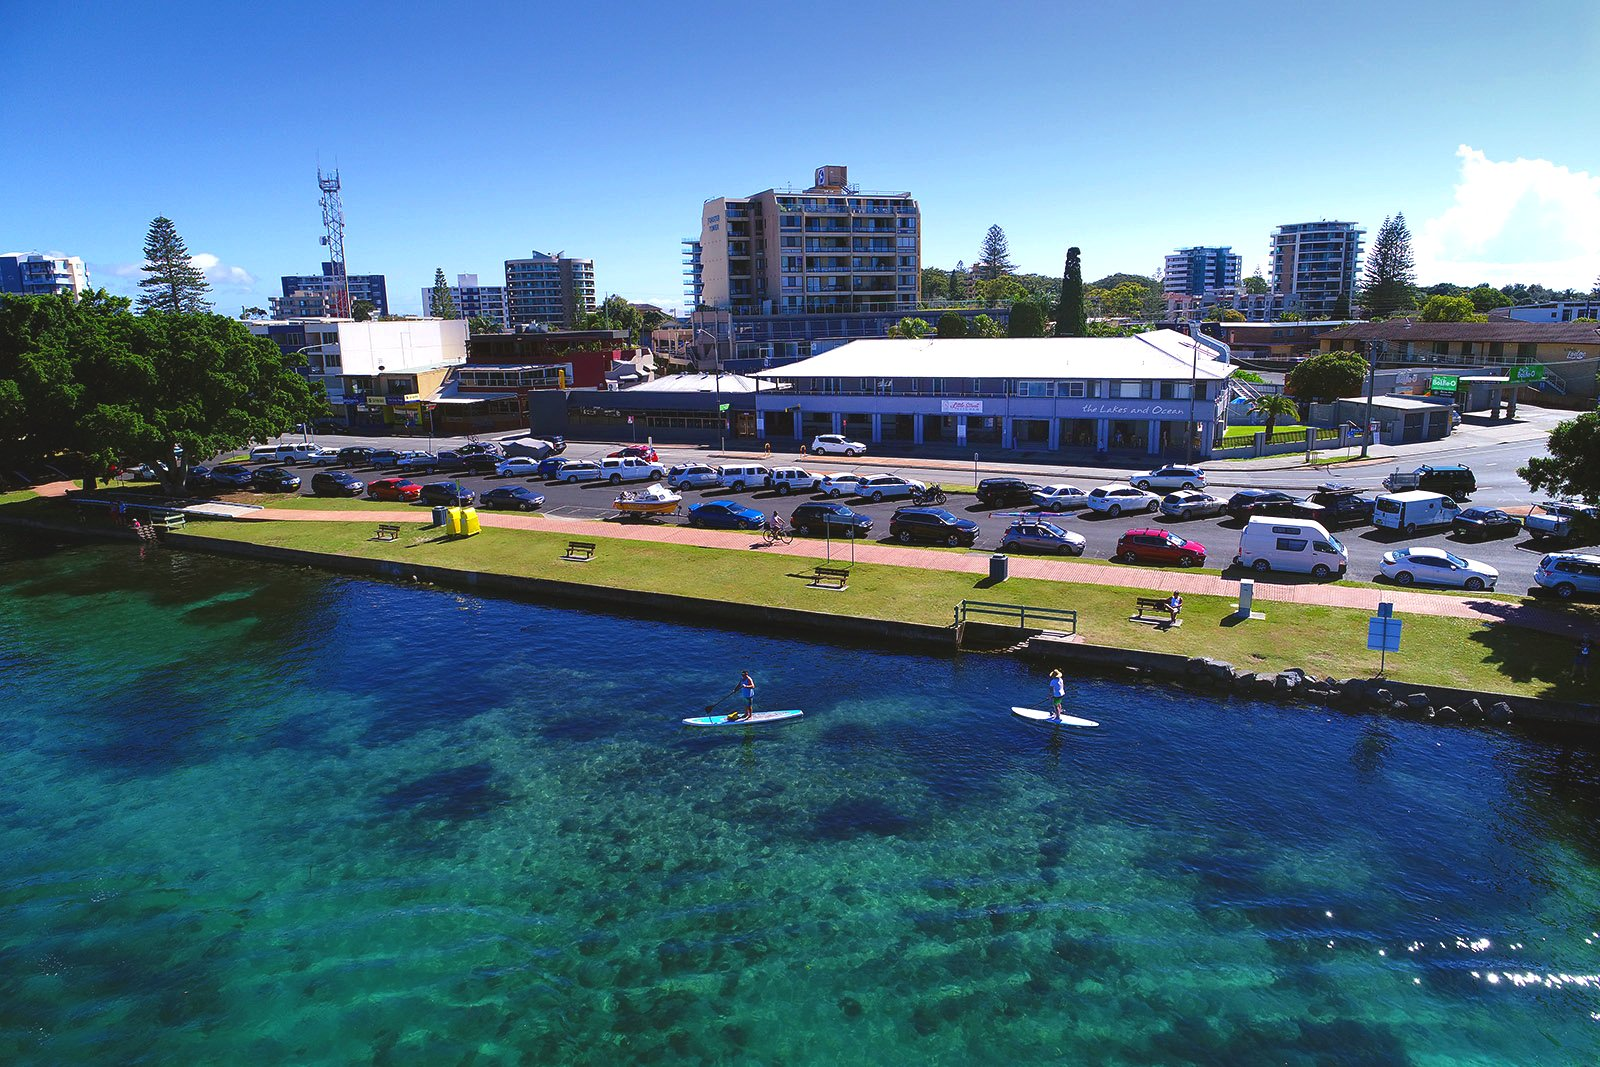 Lakes-and-Ocean-Hotel-Forster accommodation